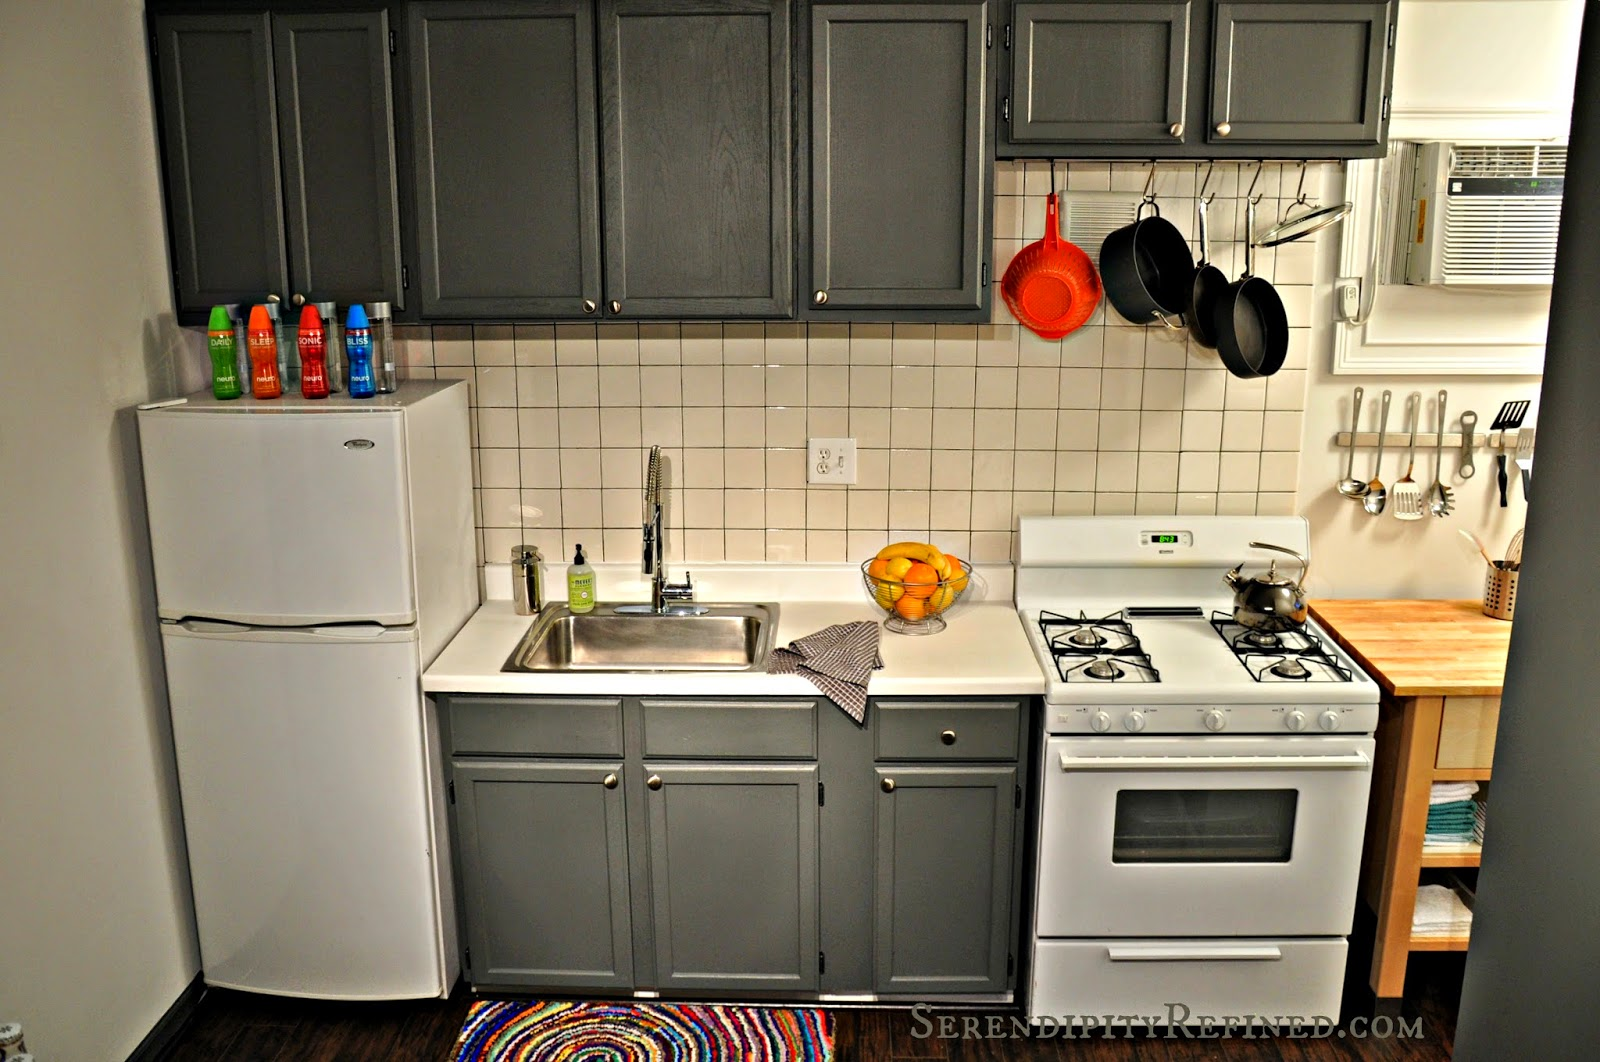 Diy kitchen makeover pthyd for Diy kitchen cabinets